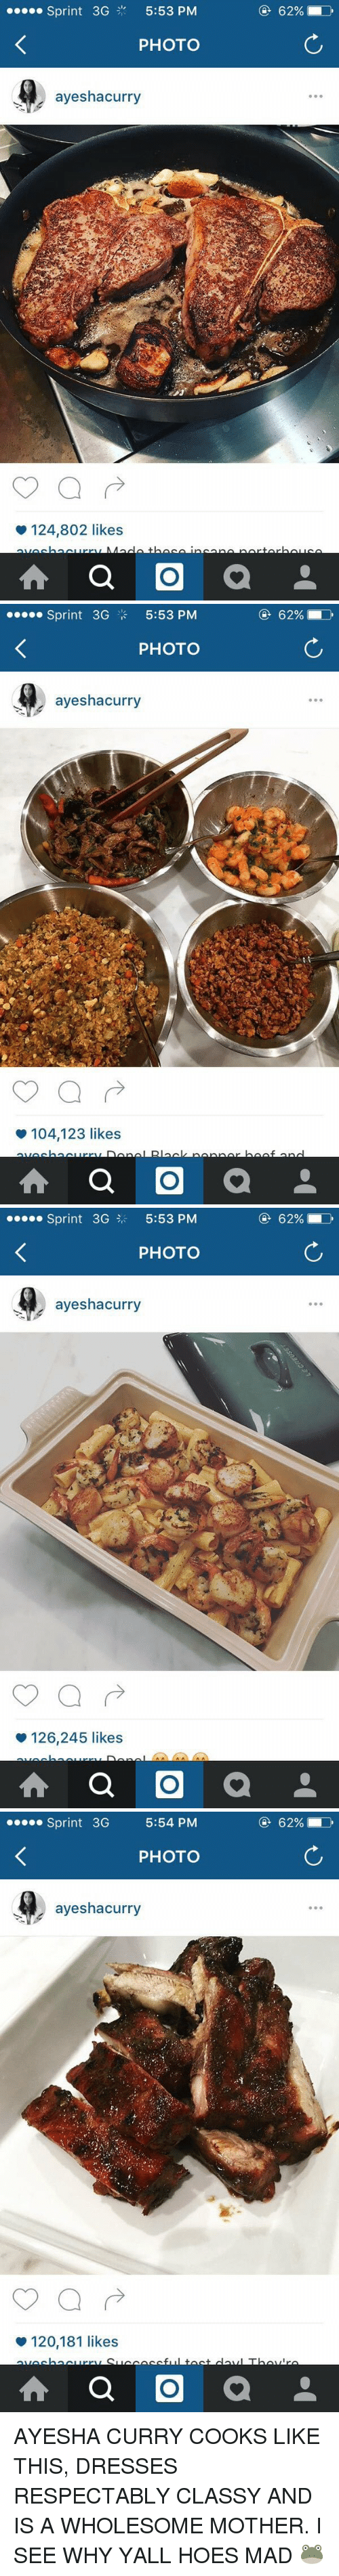 Ayesha Curry, Memes, and Sprint: Sprint 3G  5:53 PM  PHOTO  ayeshacurry  124,802 likes  A a O  a   Sprint 3G  5:53 PM  PHOTO  ayeshacurry  104,123 likes  A a O  a  62%   Sprint 3G 5:53 PM  PHOTO  ayeshacurry  126,245 likes  A a O  a   Sprint  3G  5:54 PM  PHOTO  ayeshacurry  120,181 likes  A a O  a AYESHA CURRY COOKS LIKE THIS, DRESSES RESPECTABLY CLASSY AND IS A WHOLESOME MOTHER. I SEE WHY YALL HOES MAD 🐸